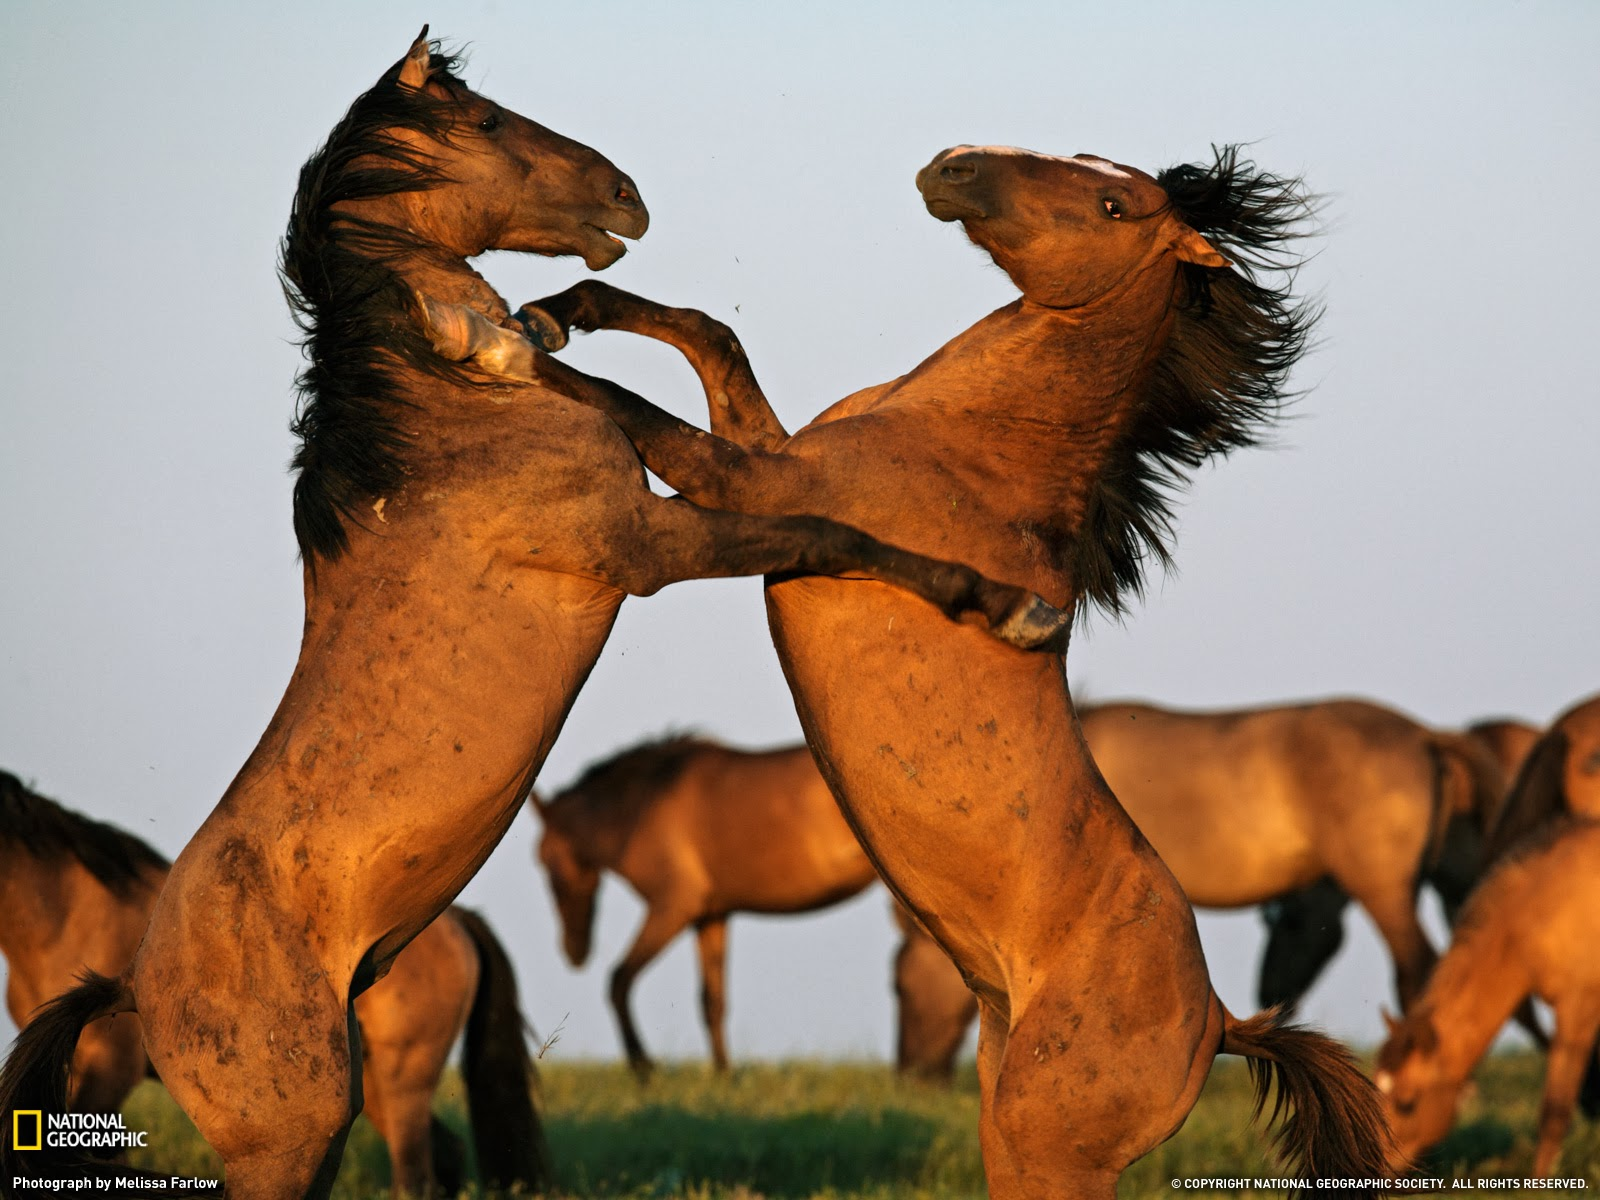 Great   Wallpaper Horse National Geographic - Two+horses+fighting+wallpaper  Gallery_604334.jpg